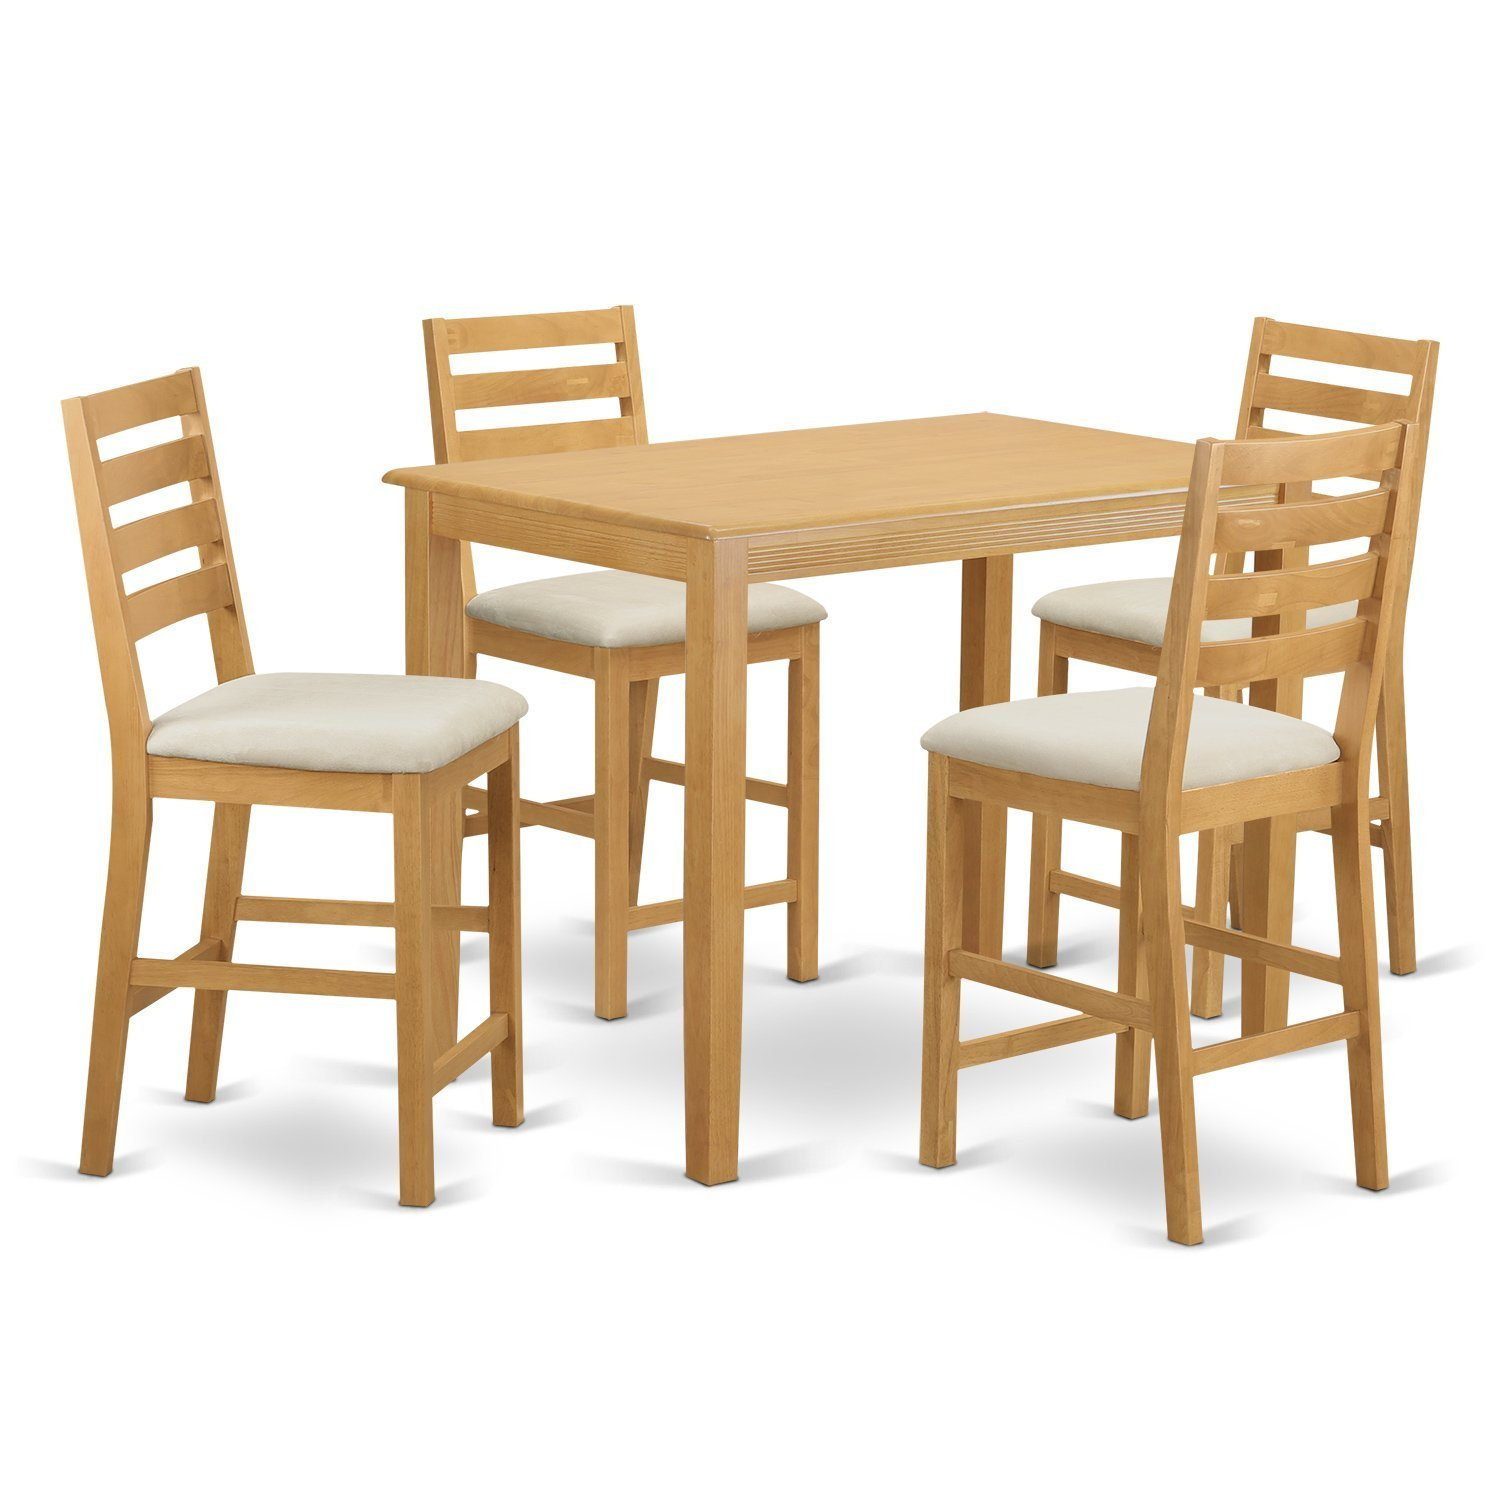 East West Furniture YACF5-OAK-C 5 Piece Counter Height Table and 4 Bar Stools Set